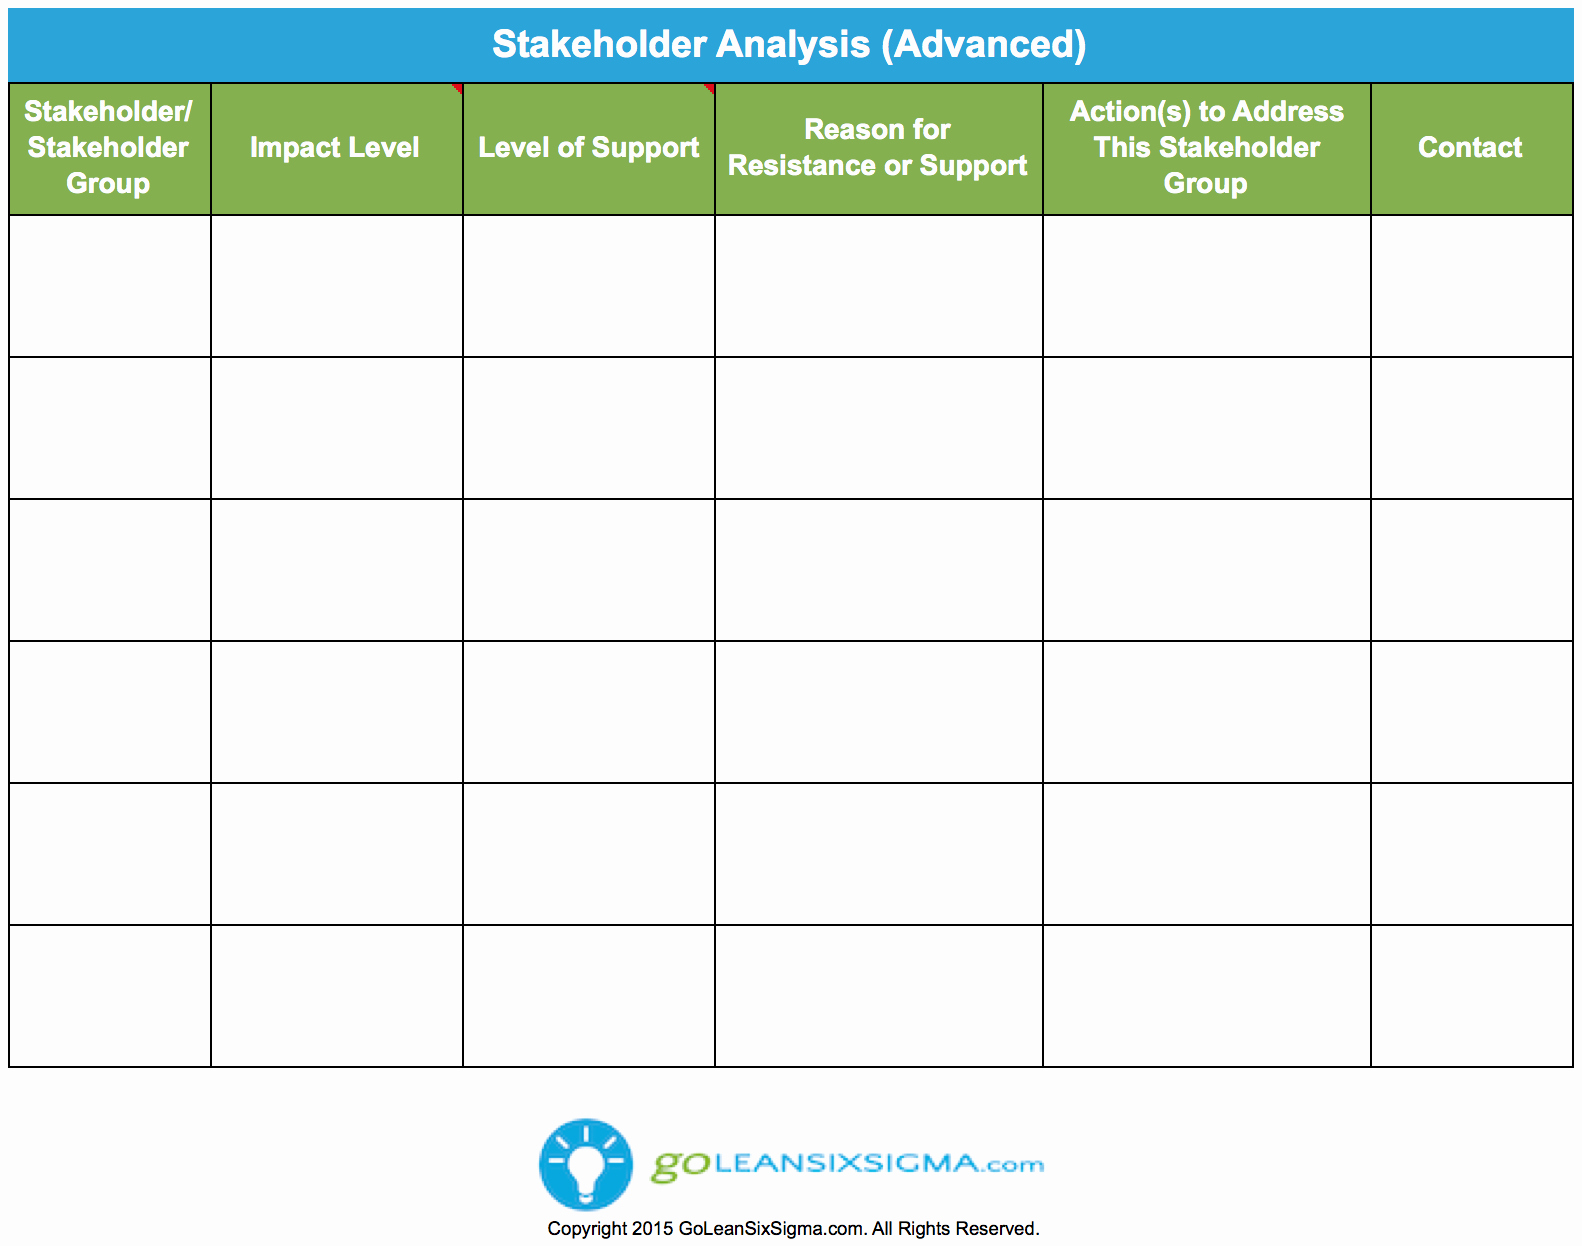 Stakeholders Management Plan Template Luxury Stakeholder Analysis Advanced Goleansixsigma